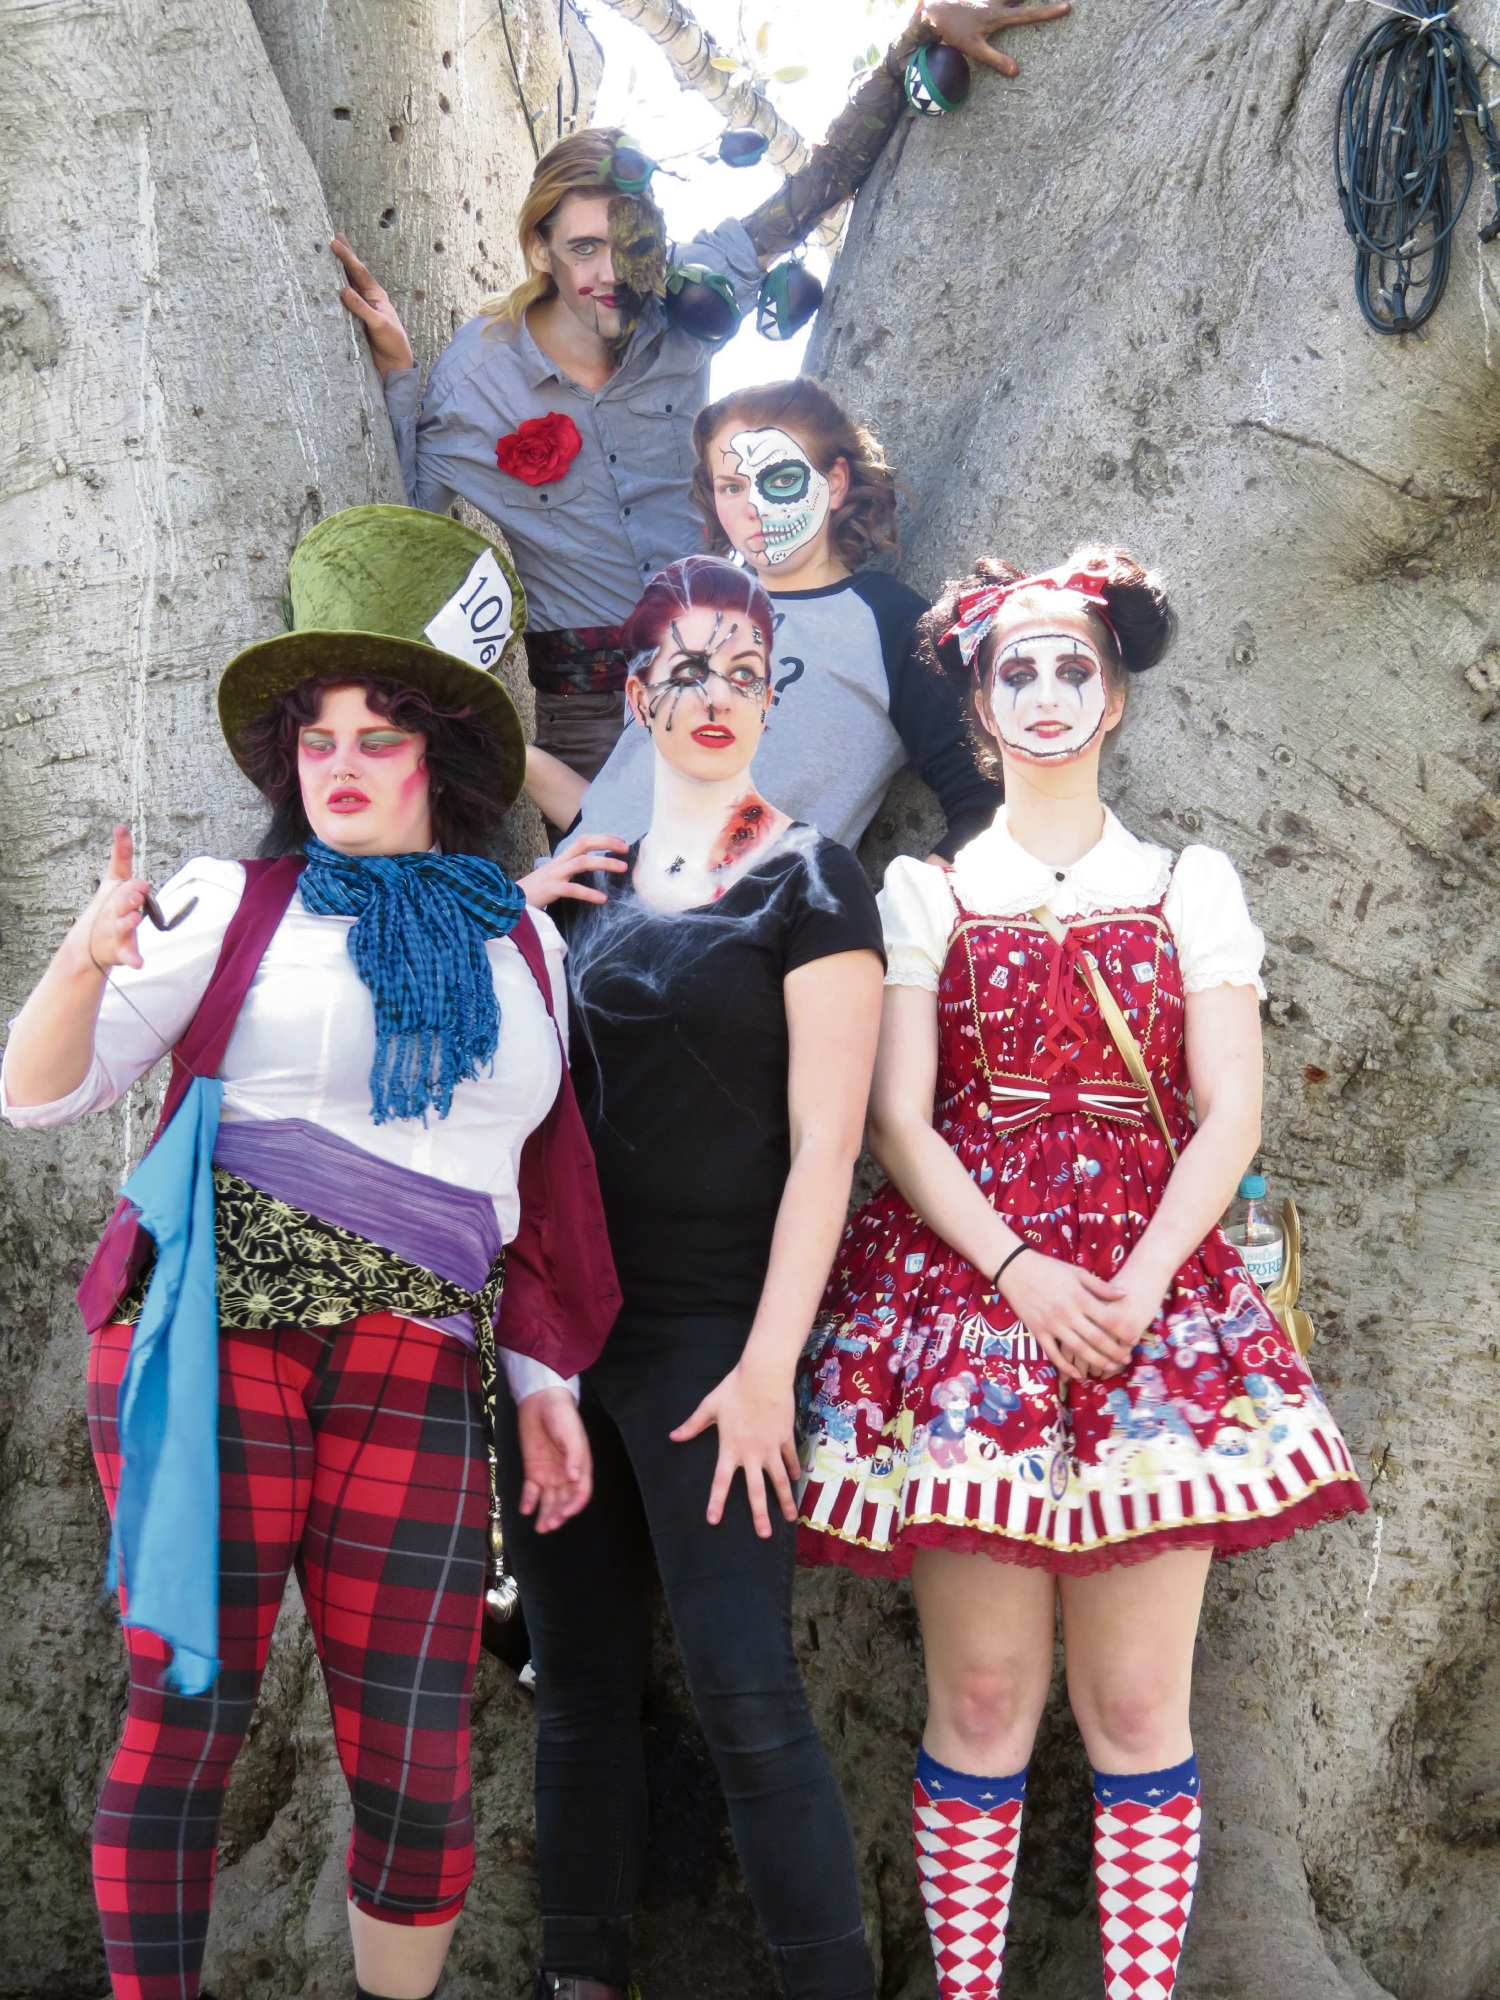 Courtney Hollins showed off her ghoulish designs at a pop-up event in Fremantle recently.